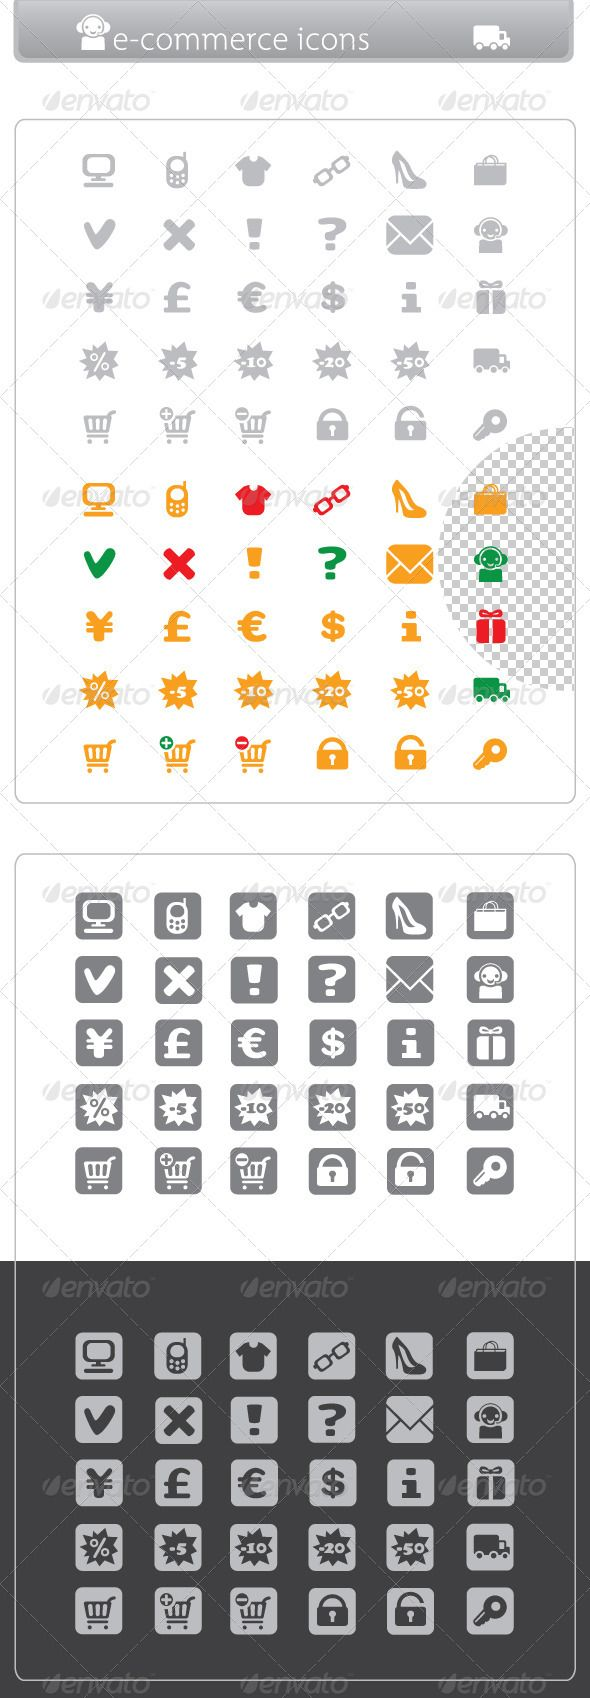 Download minimalist e commerce icons graphicriver 2414143 http graphic indexaz com download premium themes pinterest fonts icons and the o jays